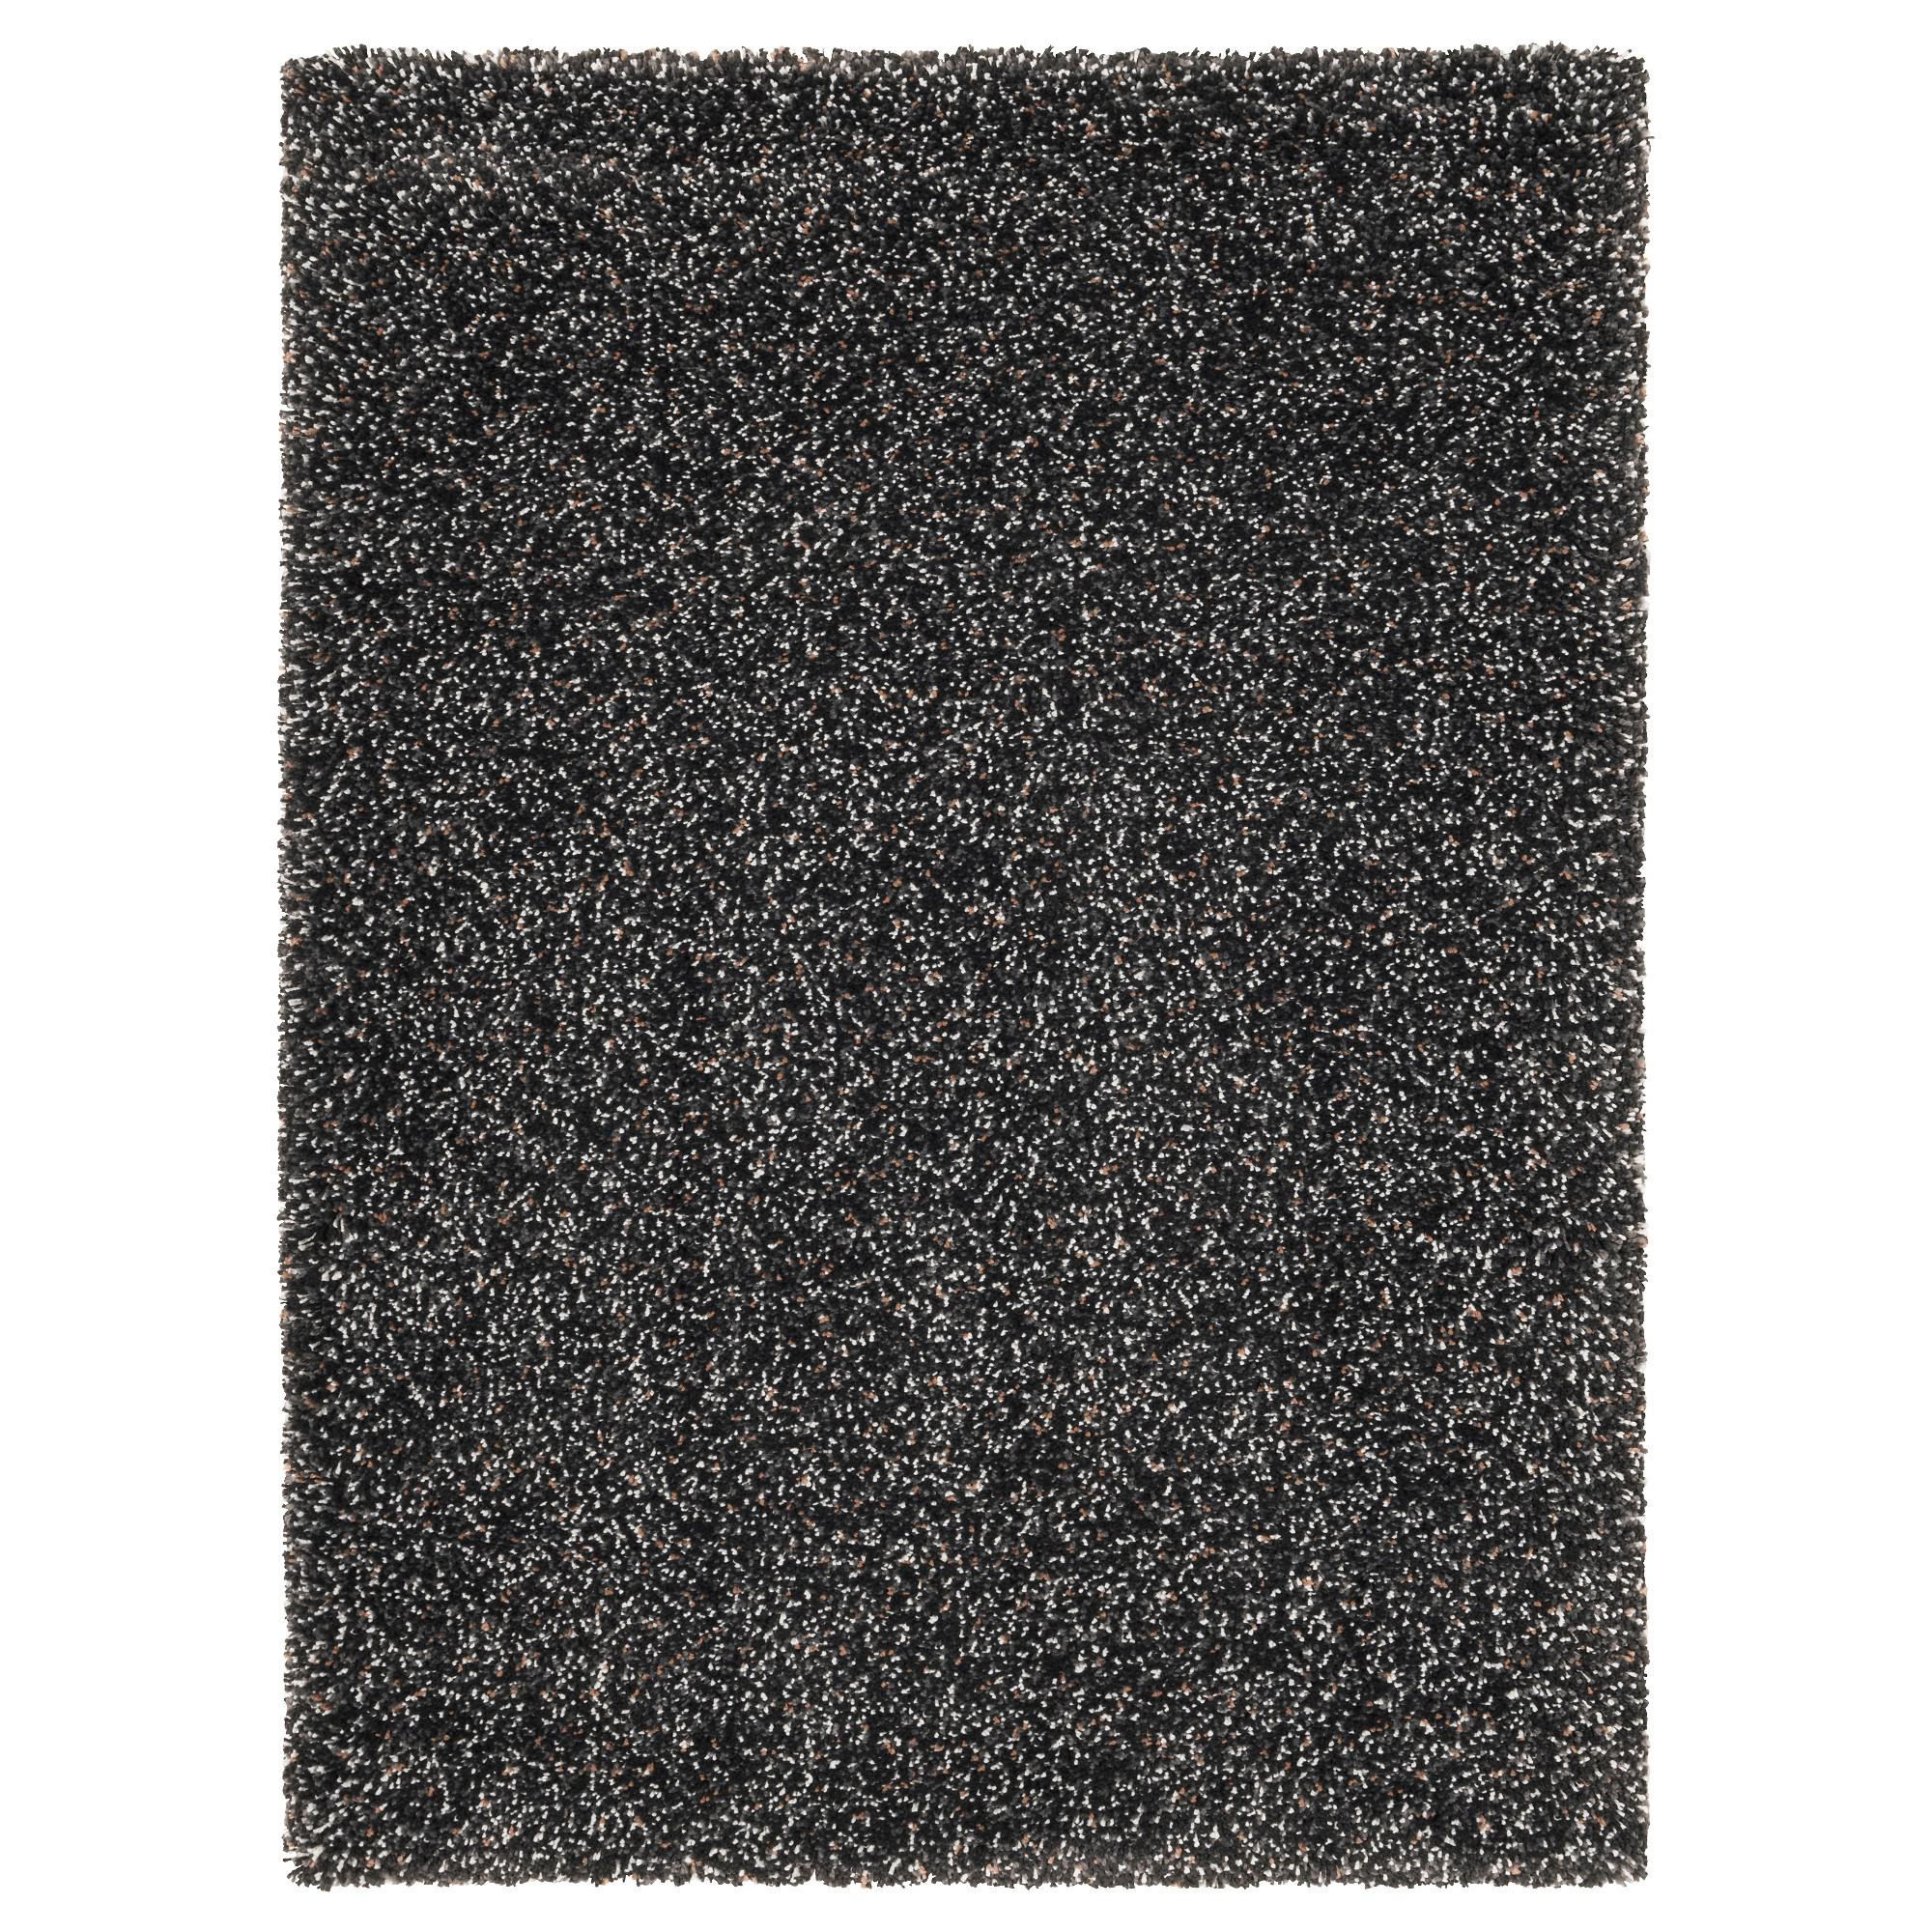 Vindum Rug High Pile Dark Grey